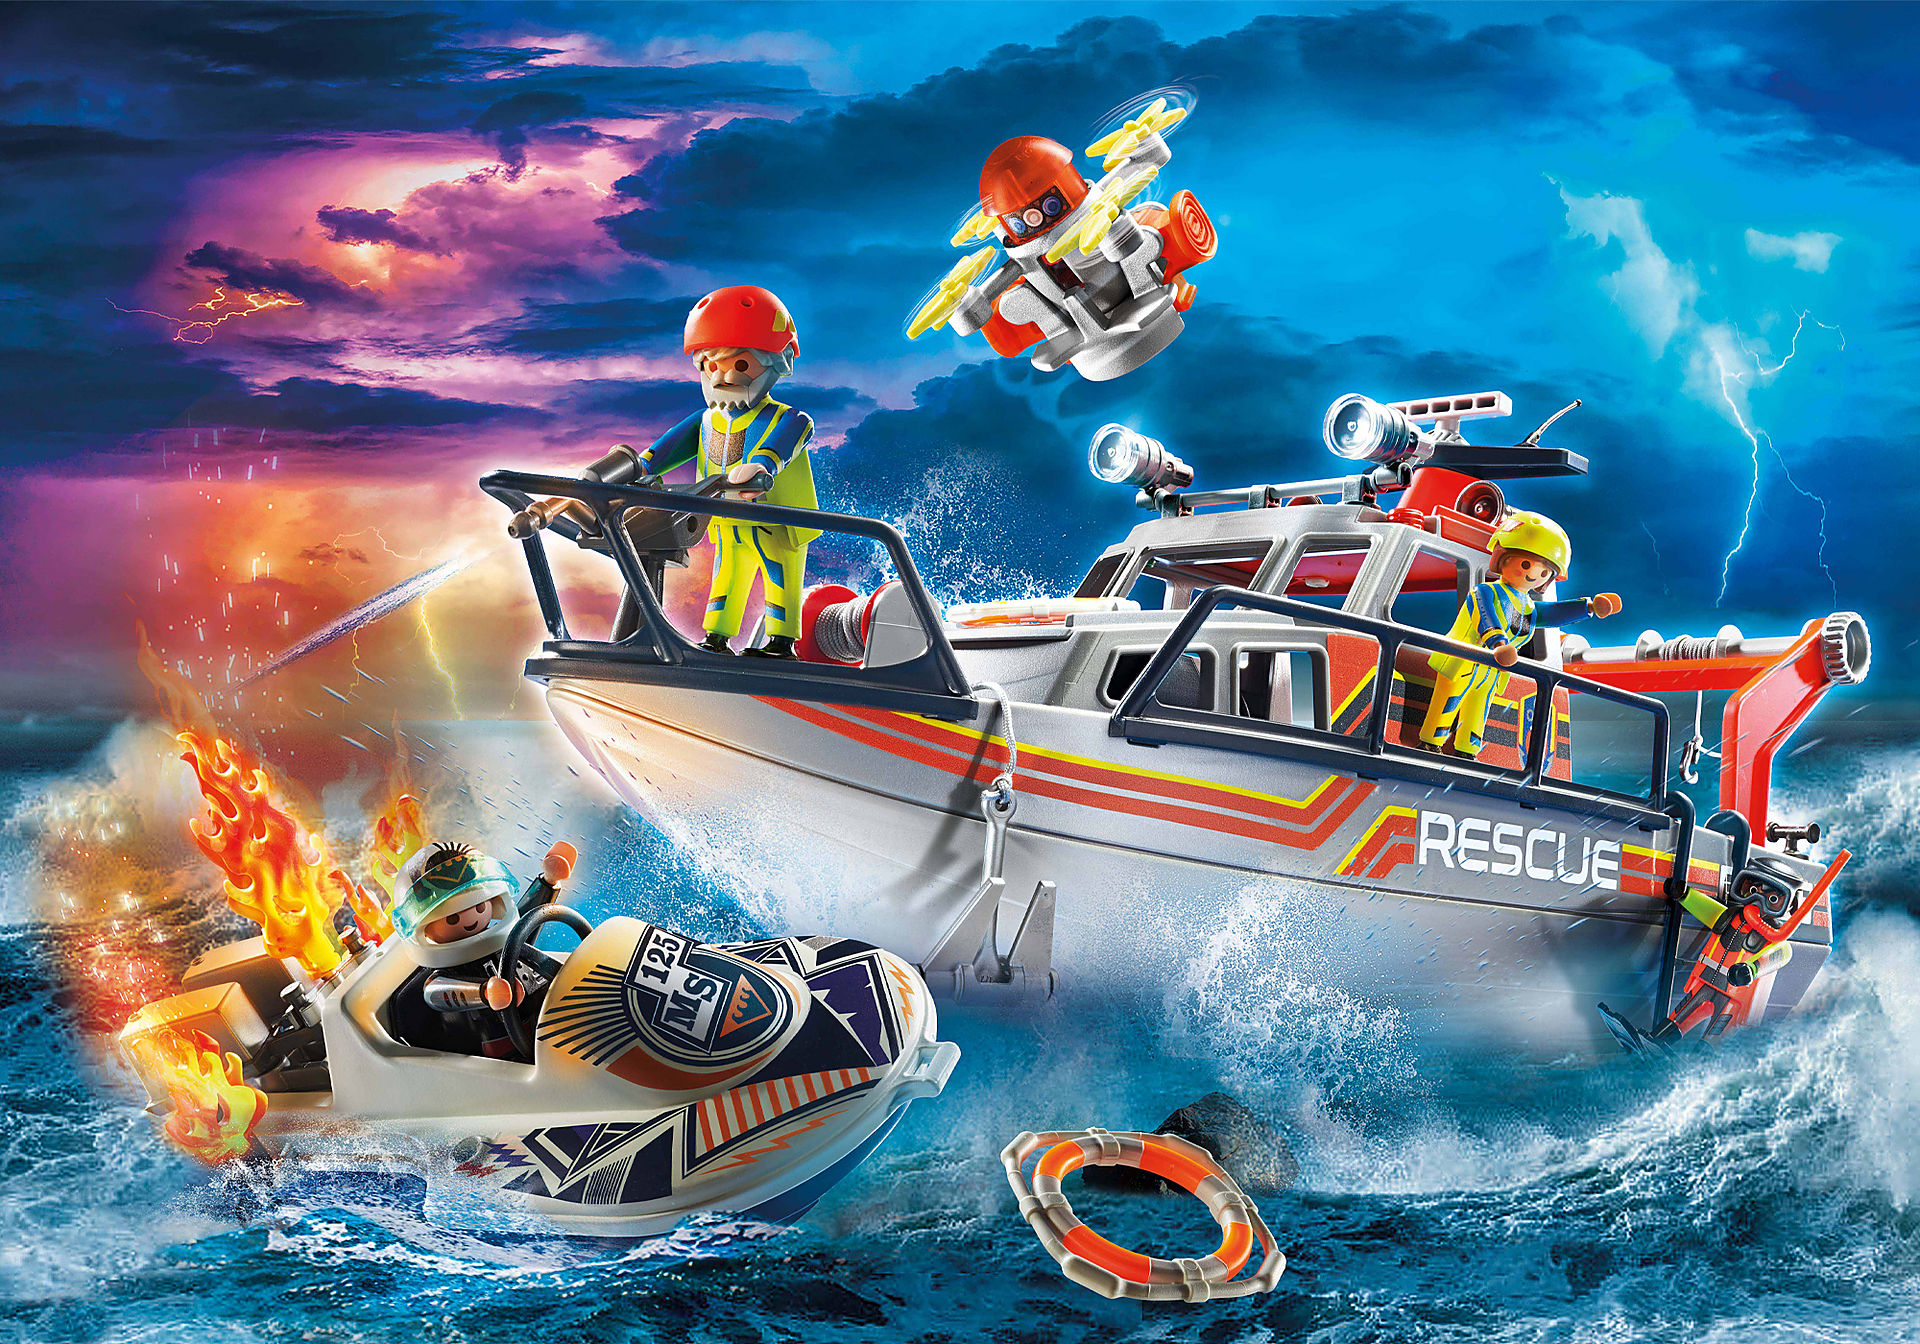 70140 Fire Rescue with Personal Watercraft zoom image1